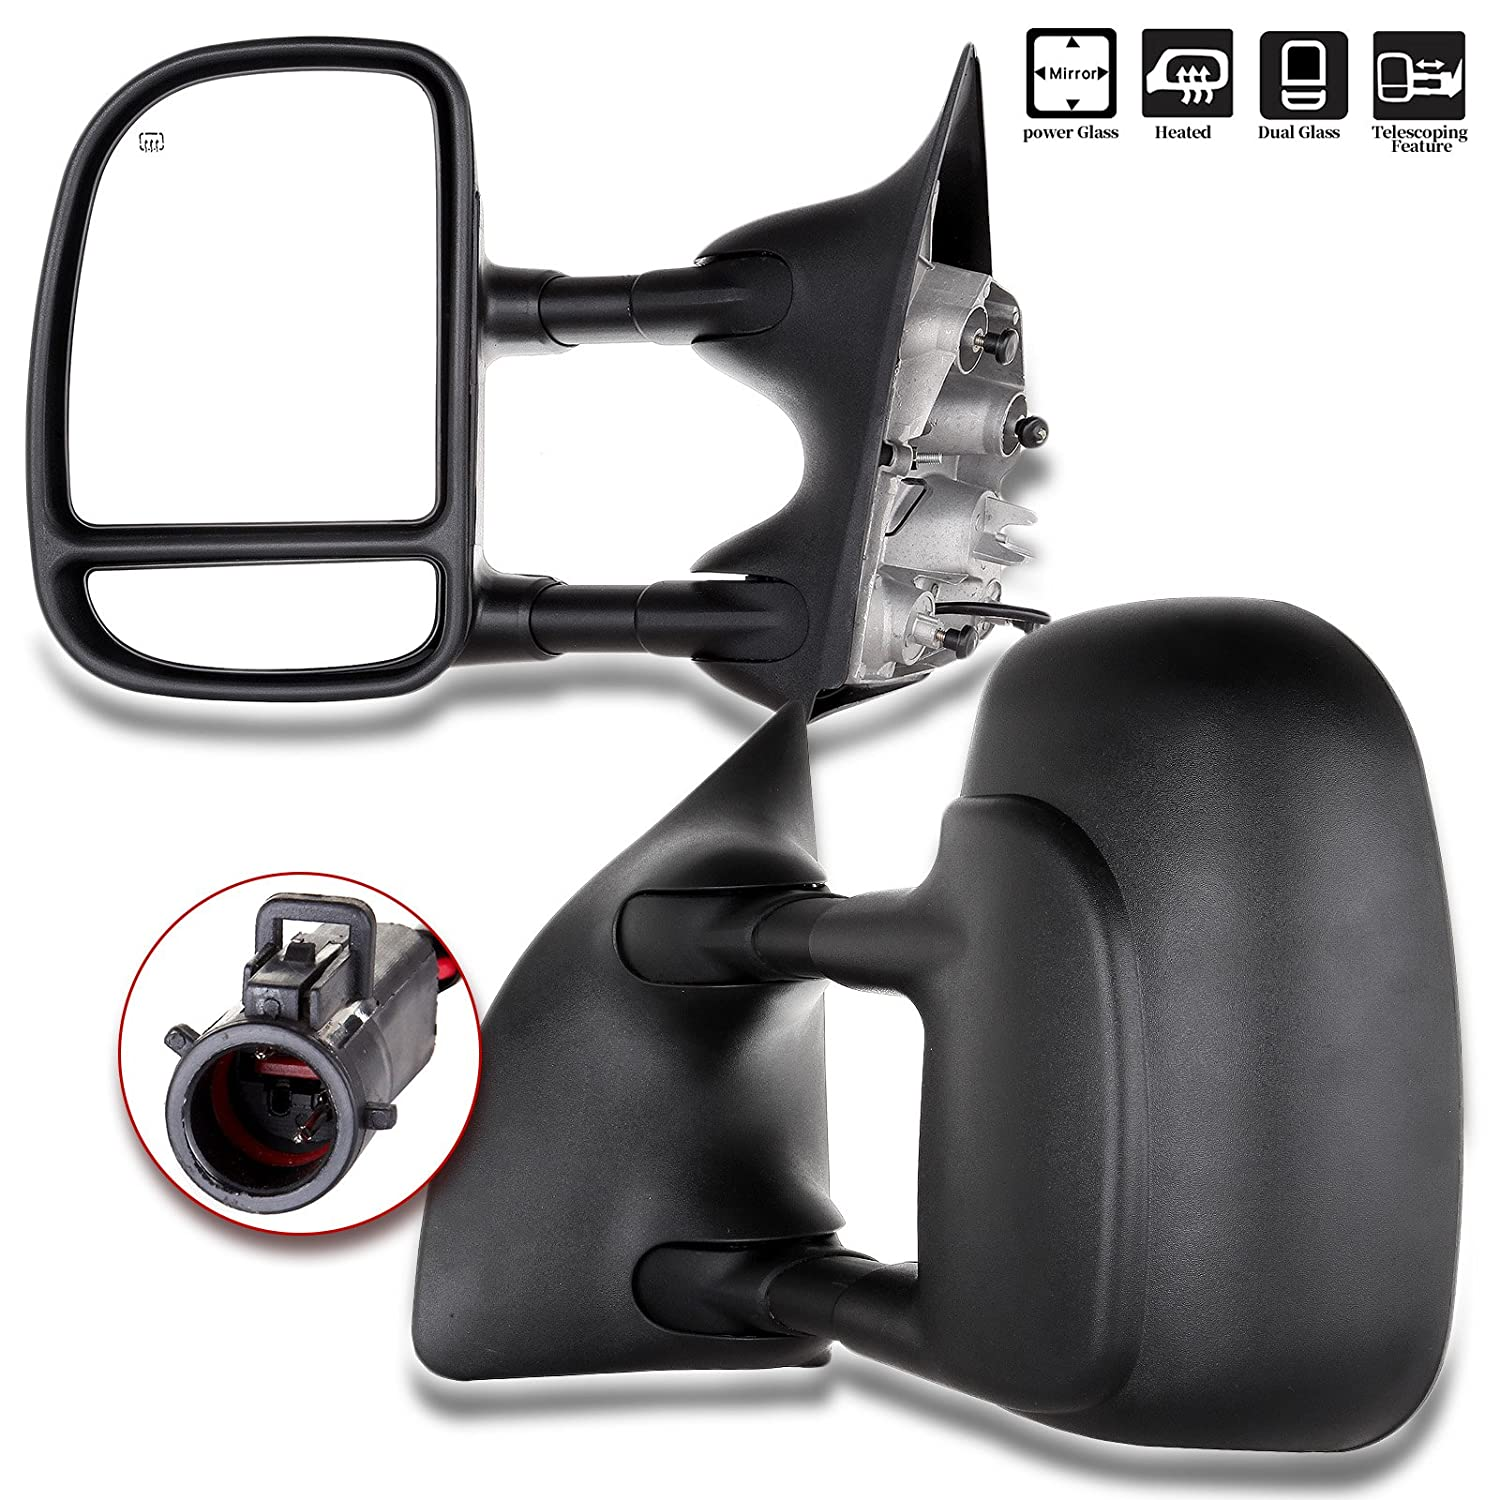 SCITOO 1999-2007 Ford F250 F350 F450 Pair Power Towing Mirrors Side View Mirrors Fit 1999 2000 2001 2002 2003 2004 2005 2006 2007 Super Duty Truck 050261-5206-1028096